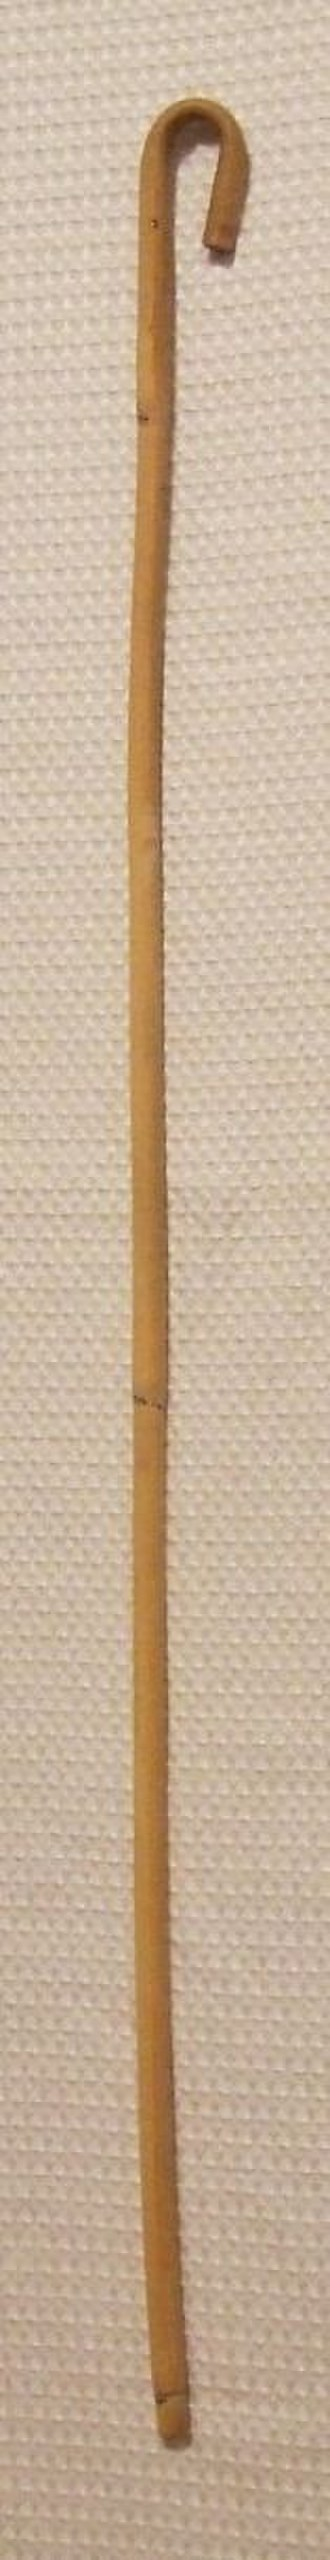 Caning - Rattan cane